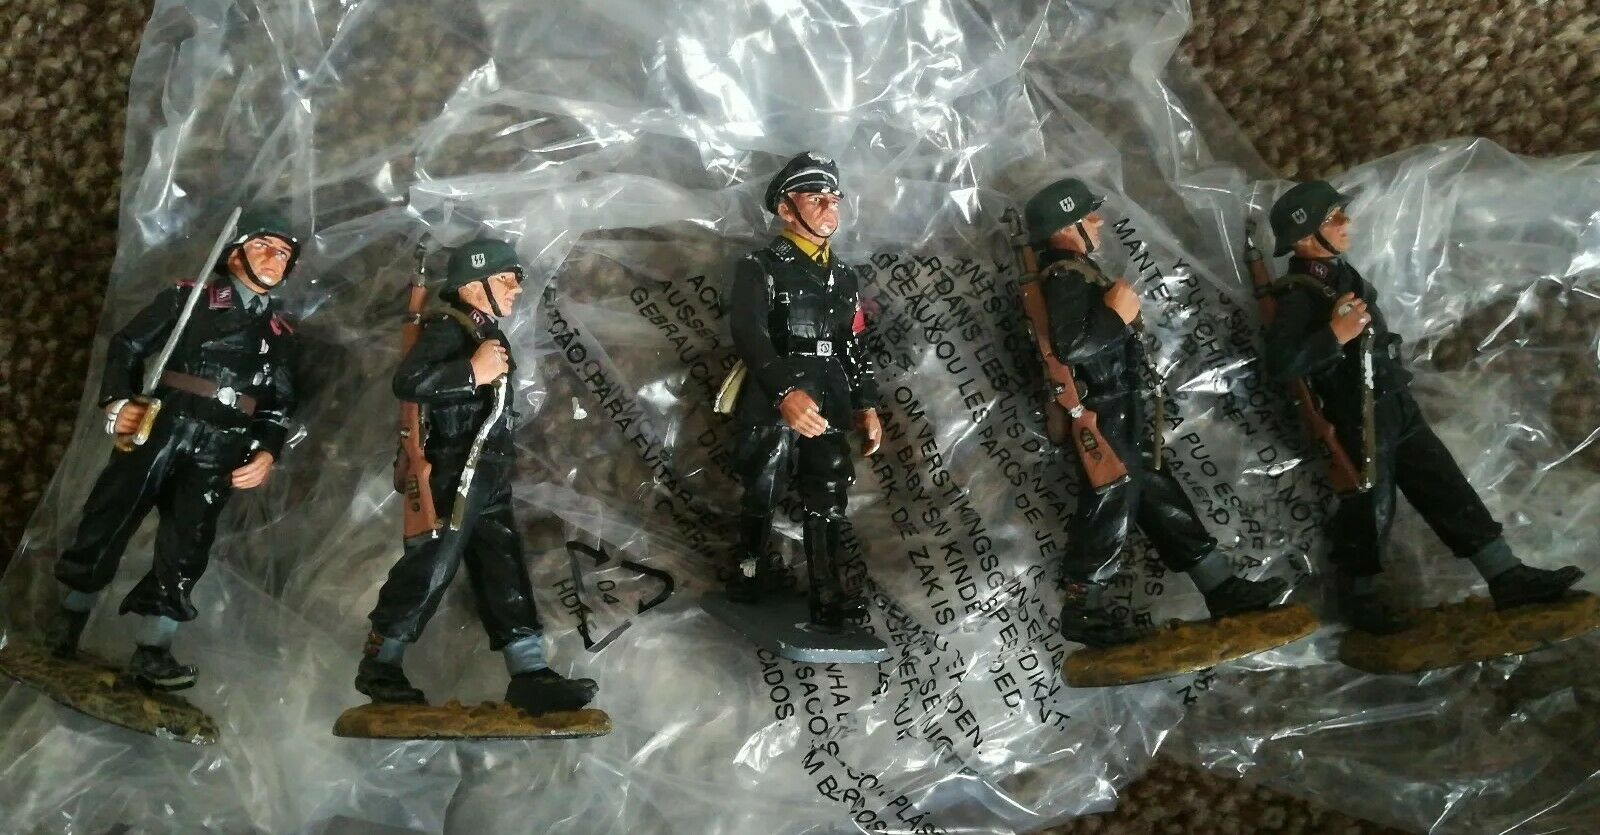 Iron Sky Production Used SS Soldiers King And Country Country With COA